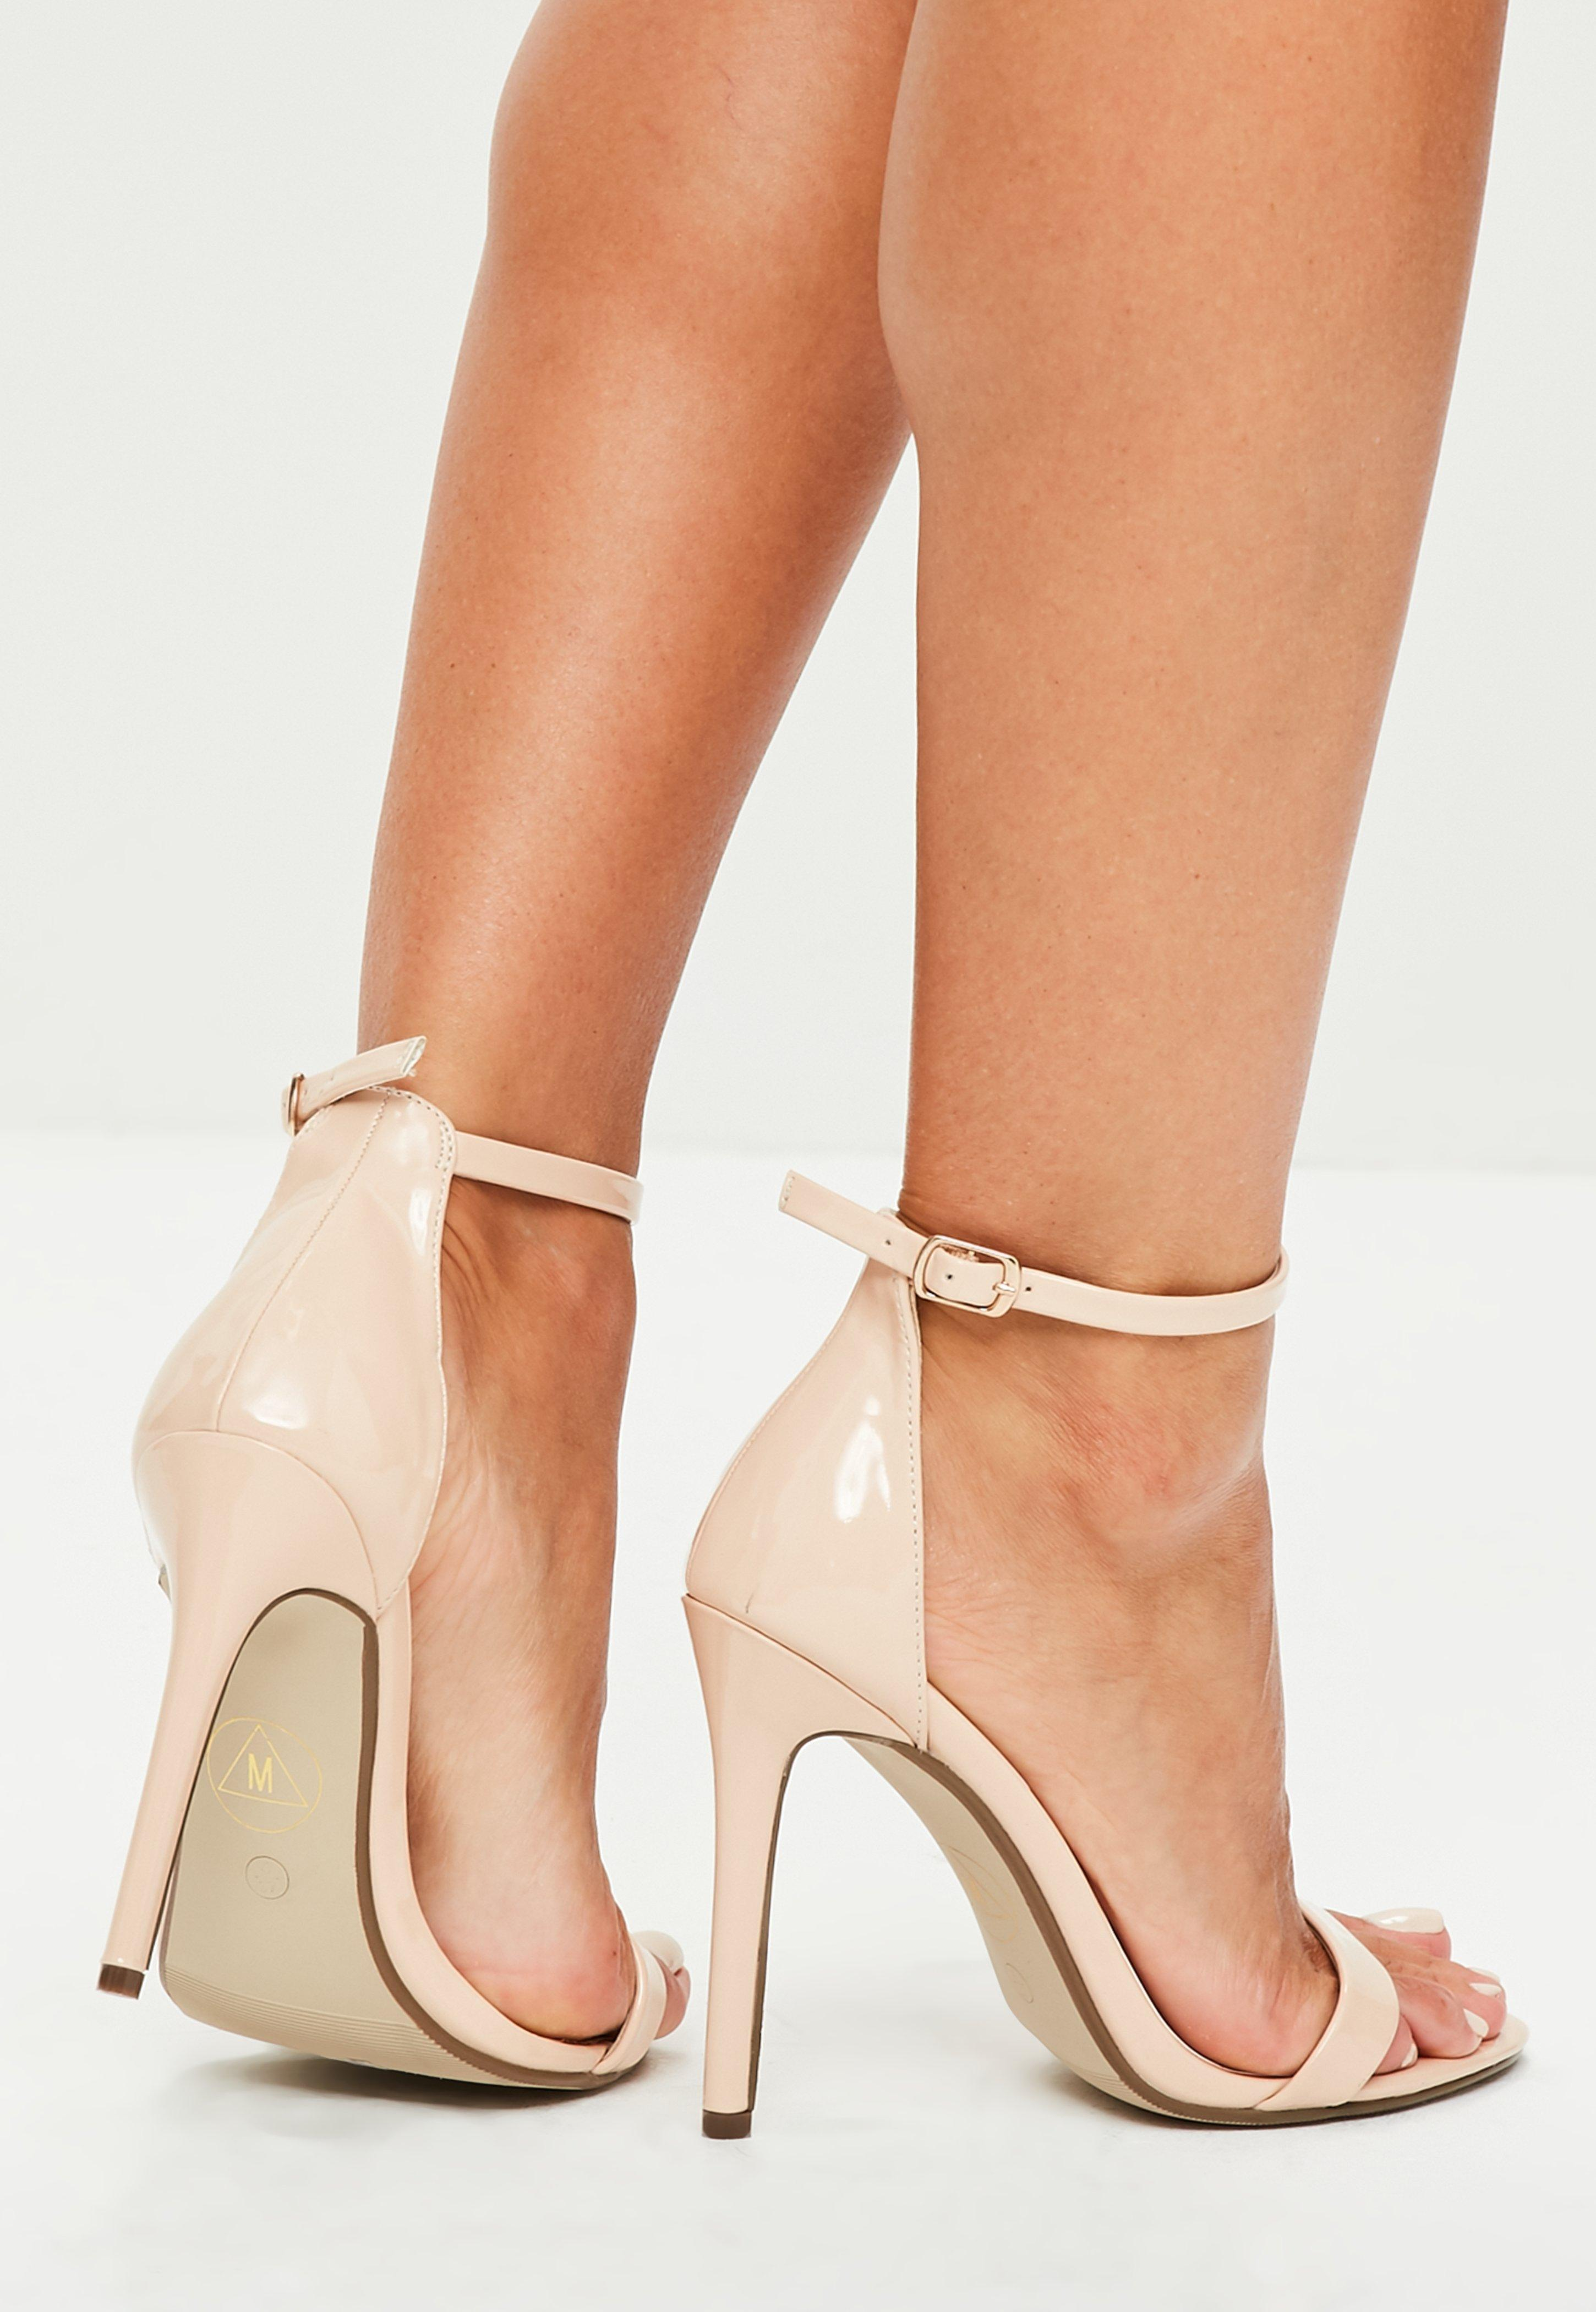 Nude Patent Ankle Strap Heels   Online Fashion Store